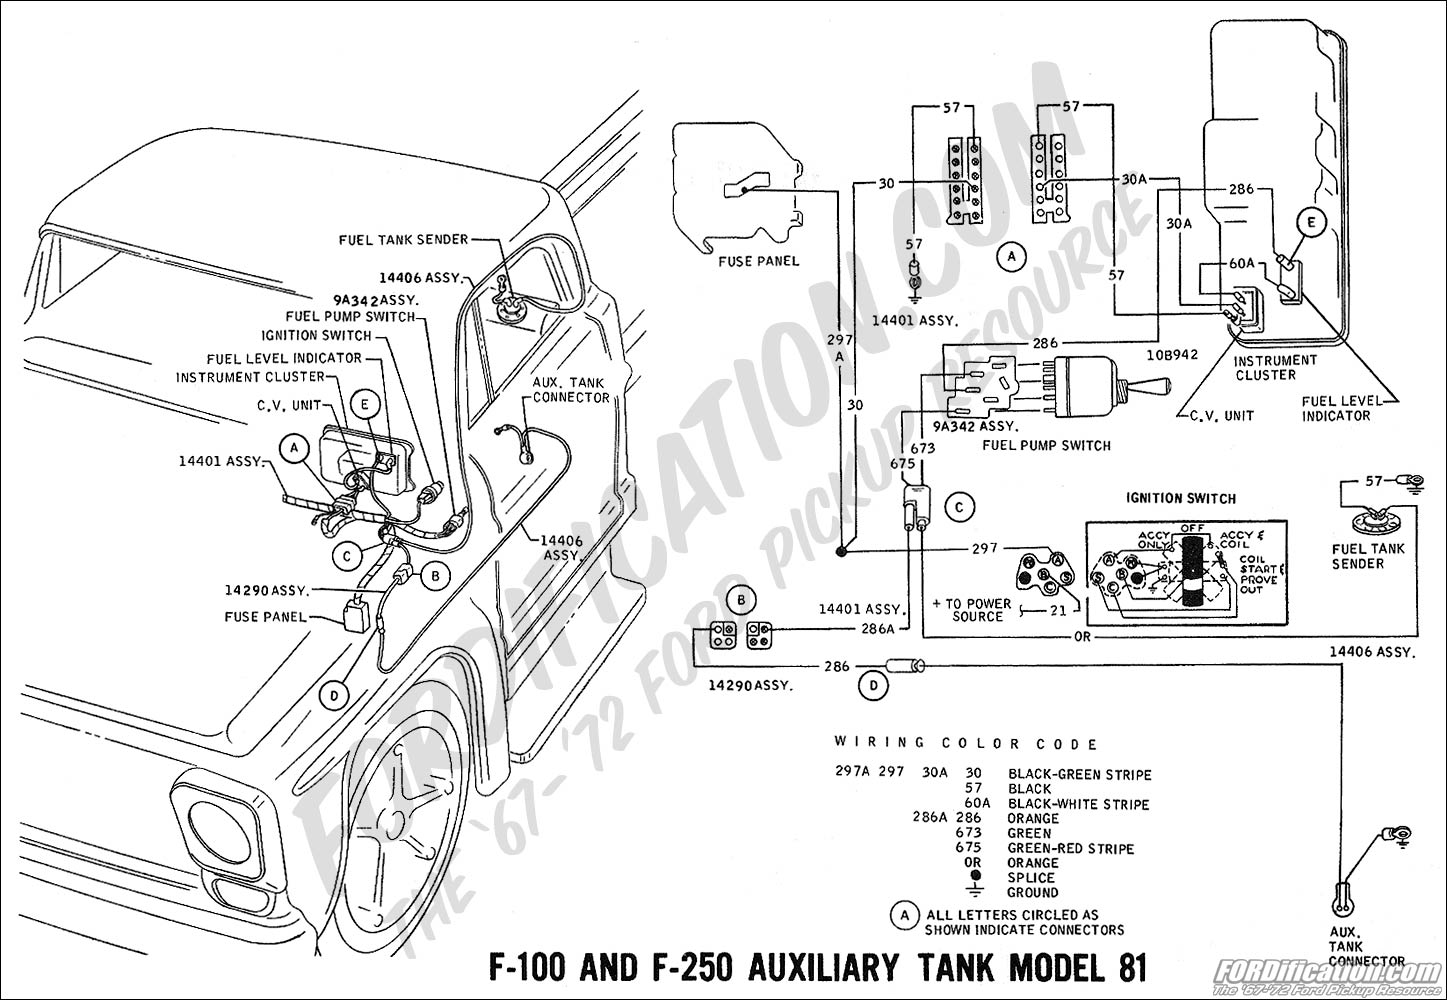 1981 Ford F150 Fuse Box Diagram Great Design Of Wiring 2004 F 150 100 Free Engine Image 2002 2001